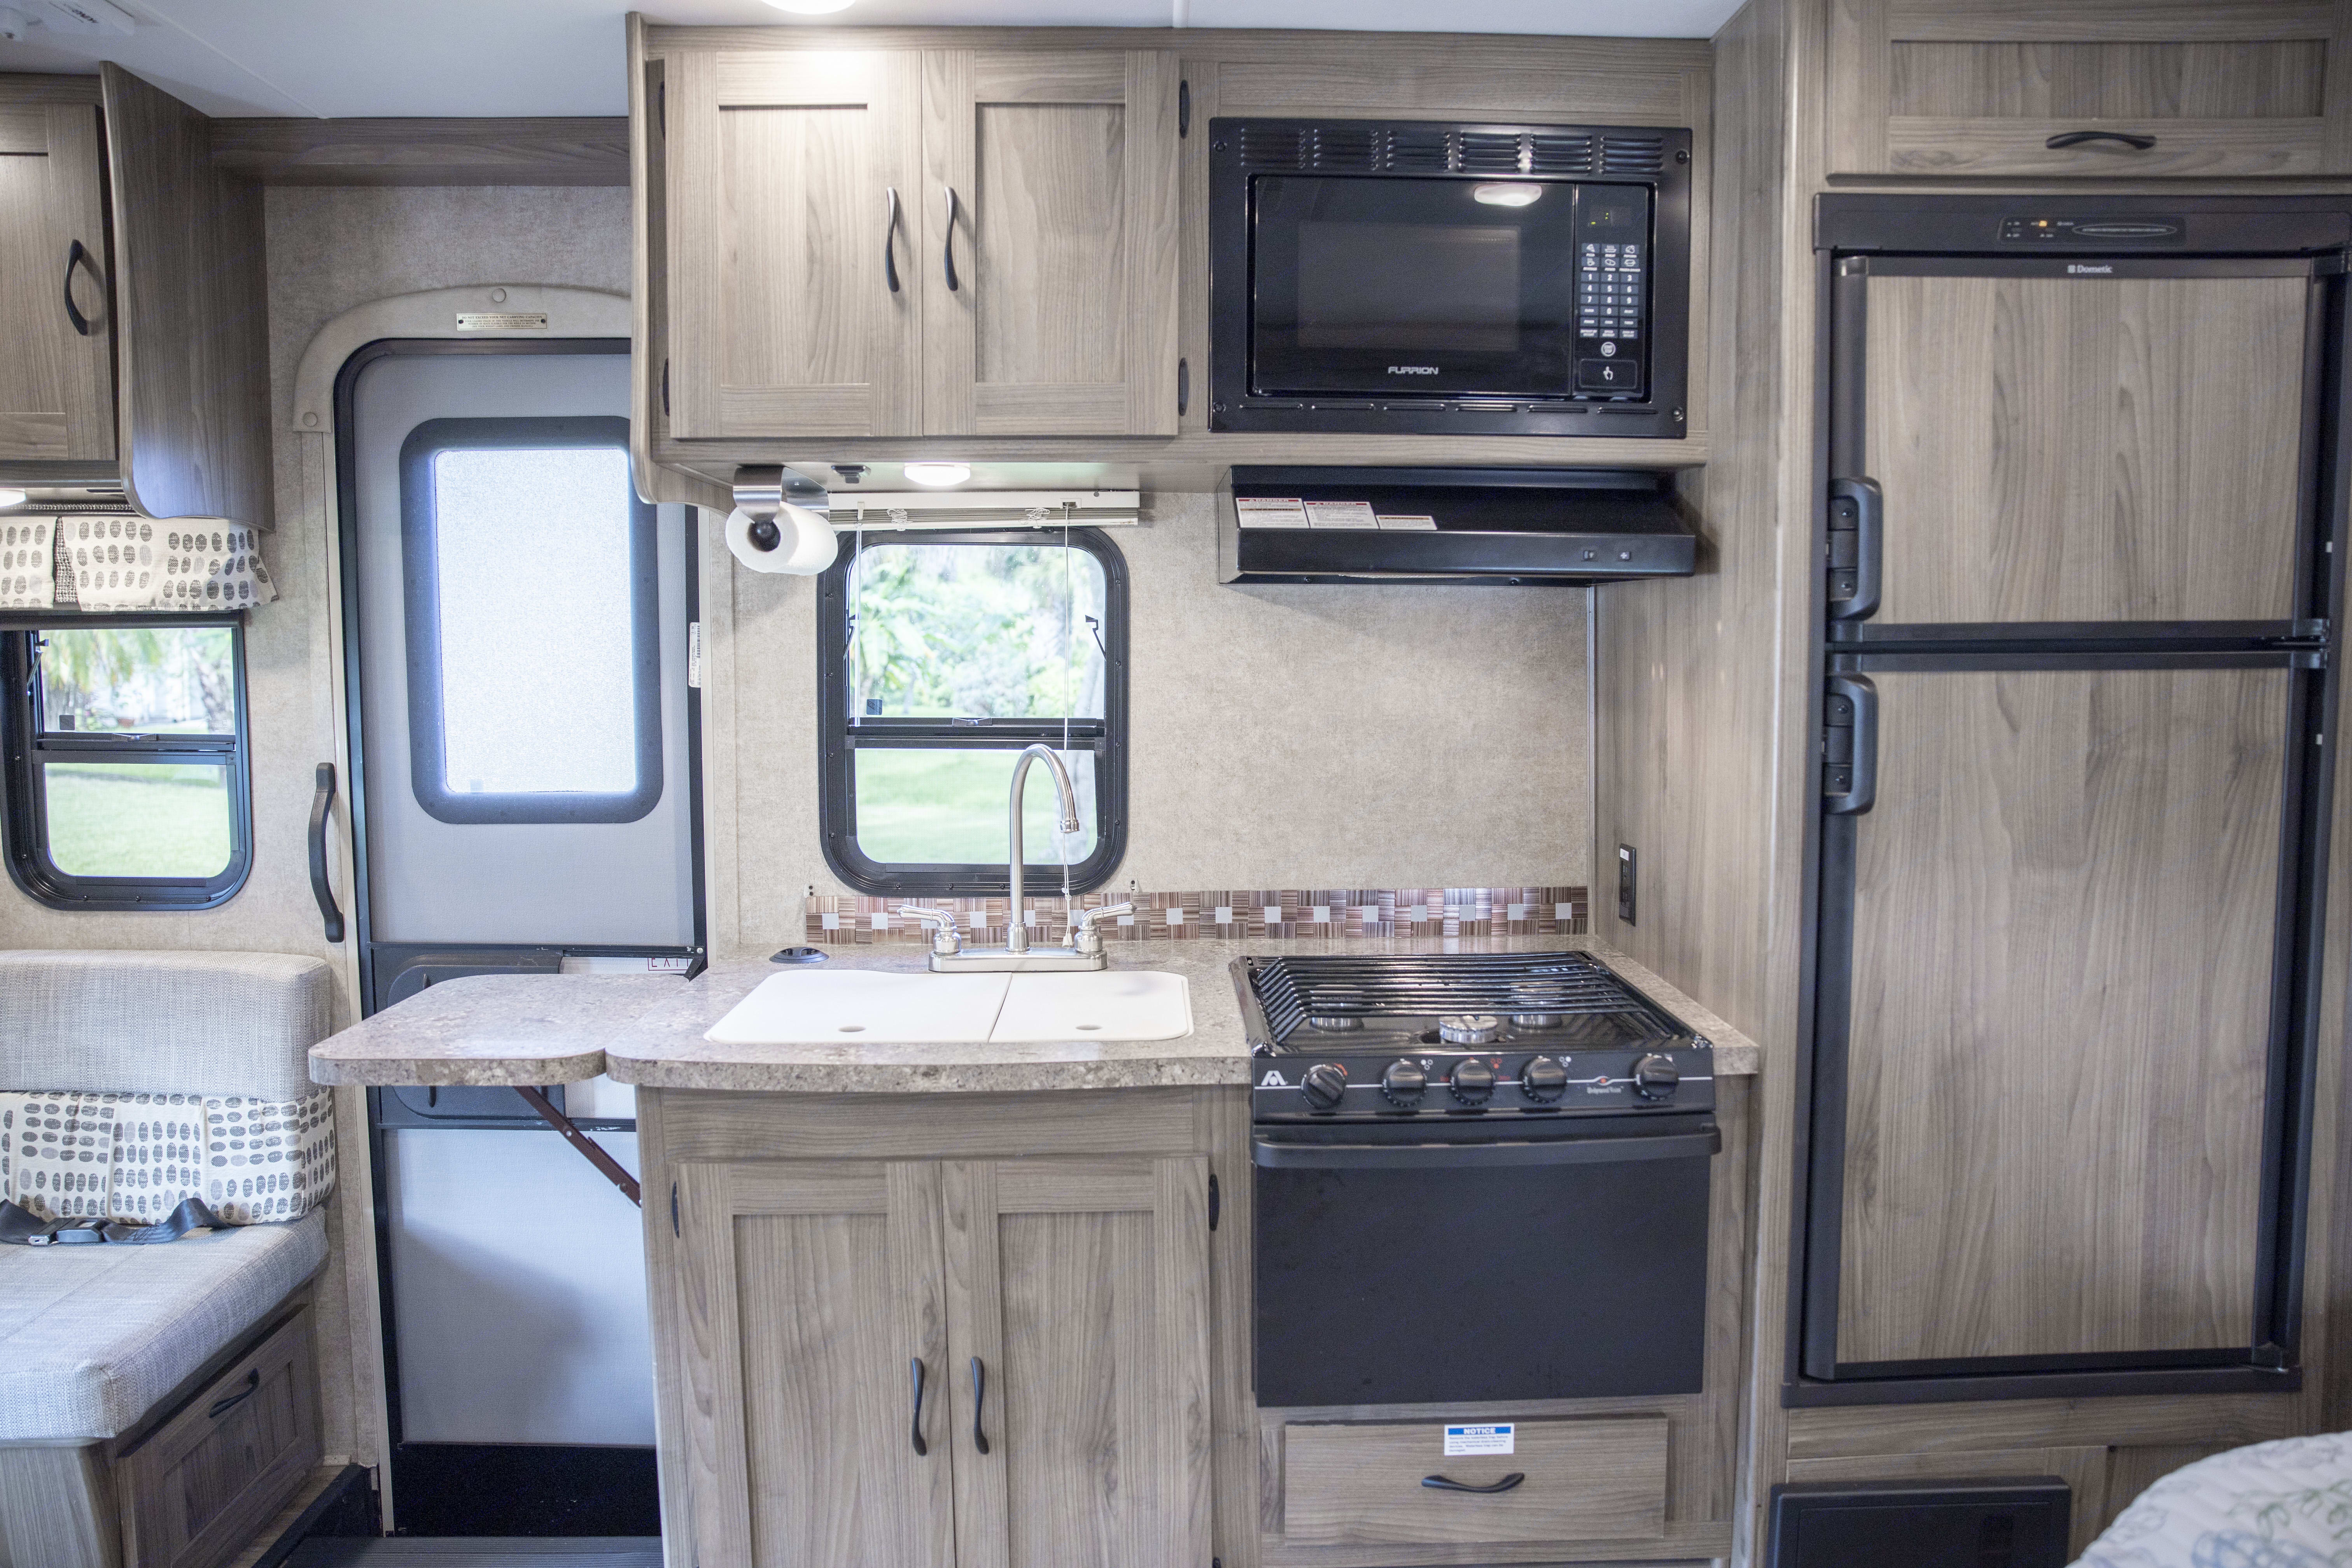 Kitchen with stove, oven microwave, very large sink, fridge and freezer.. Coachmen Prism 2016